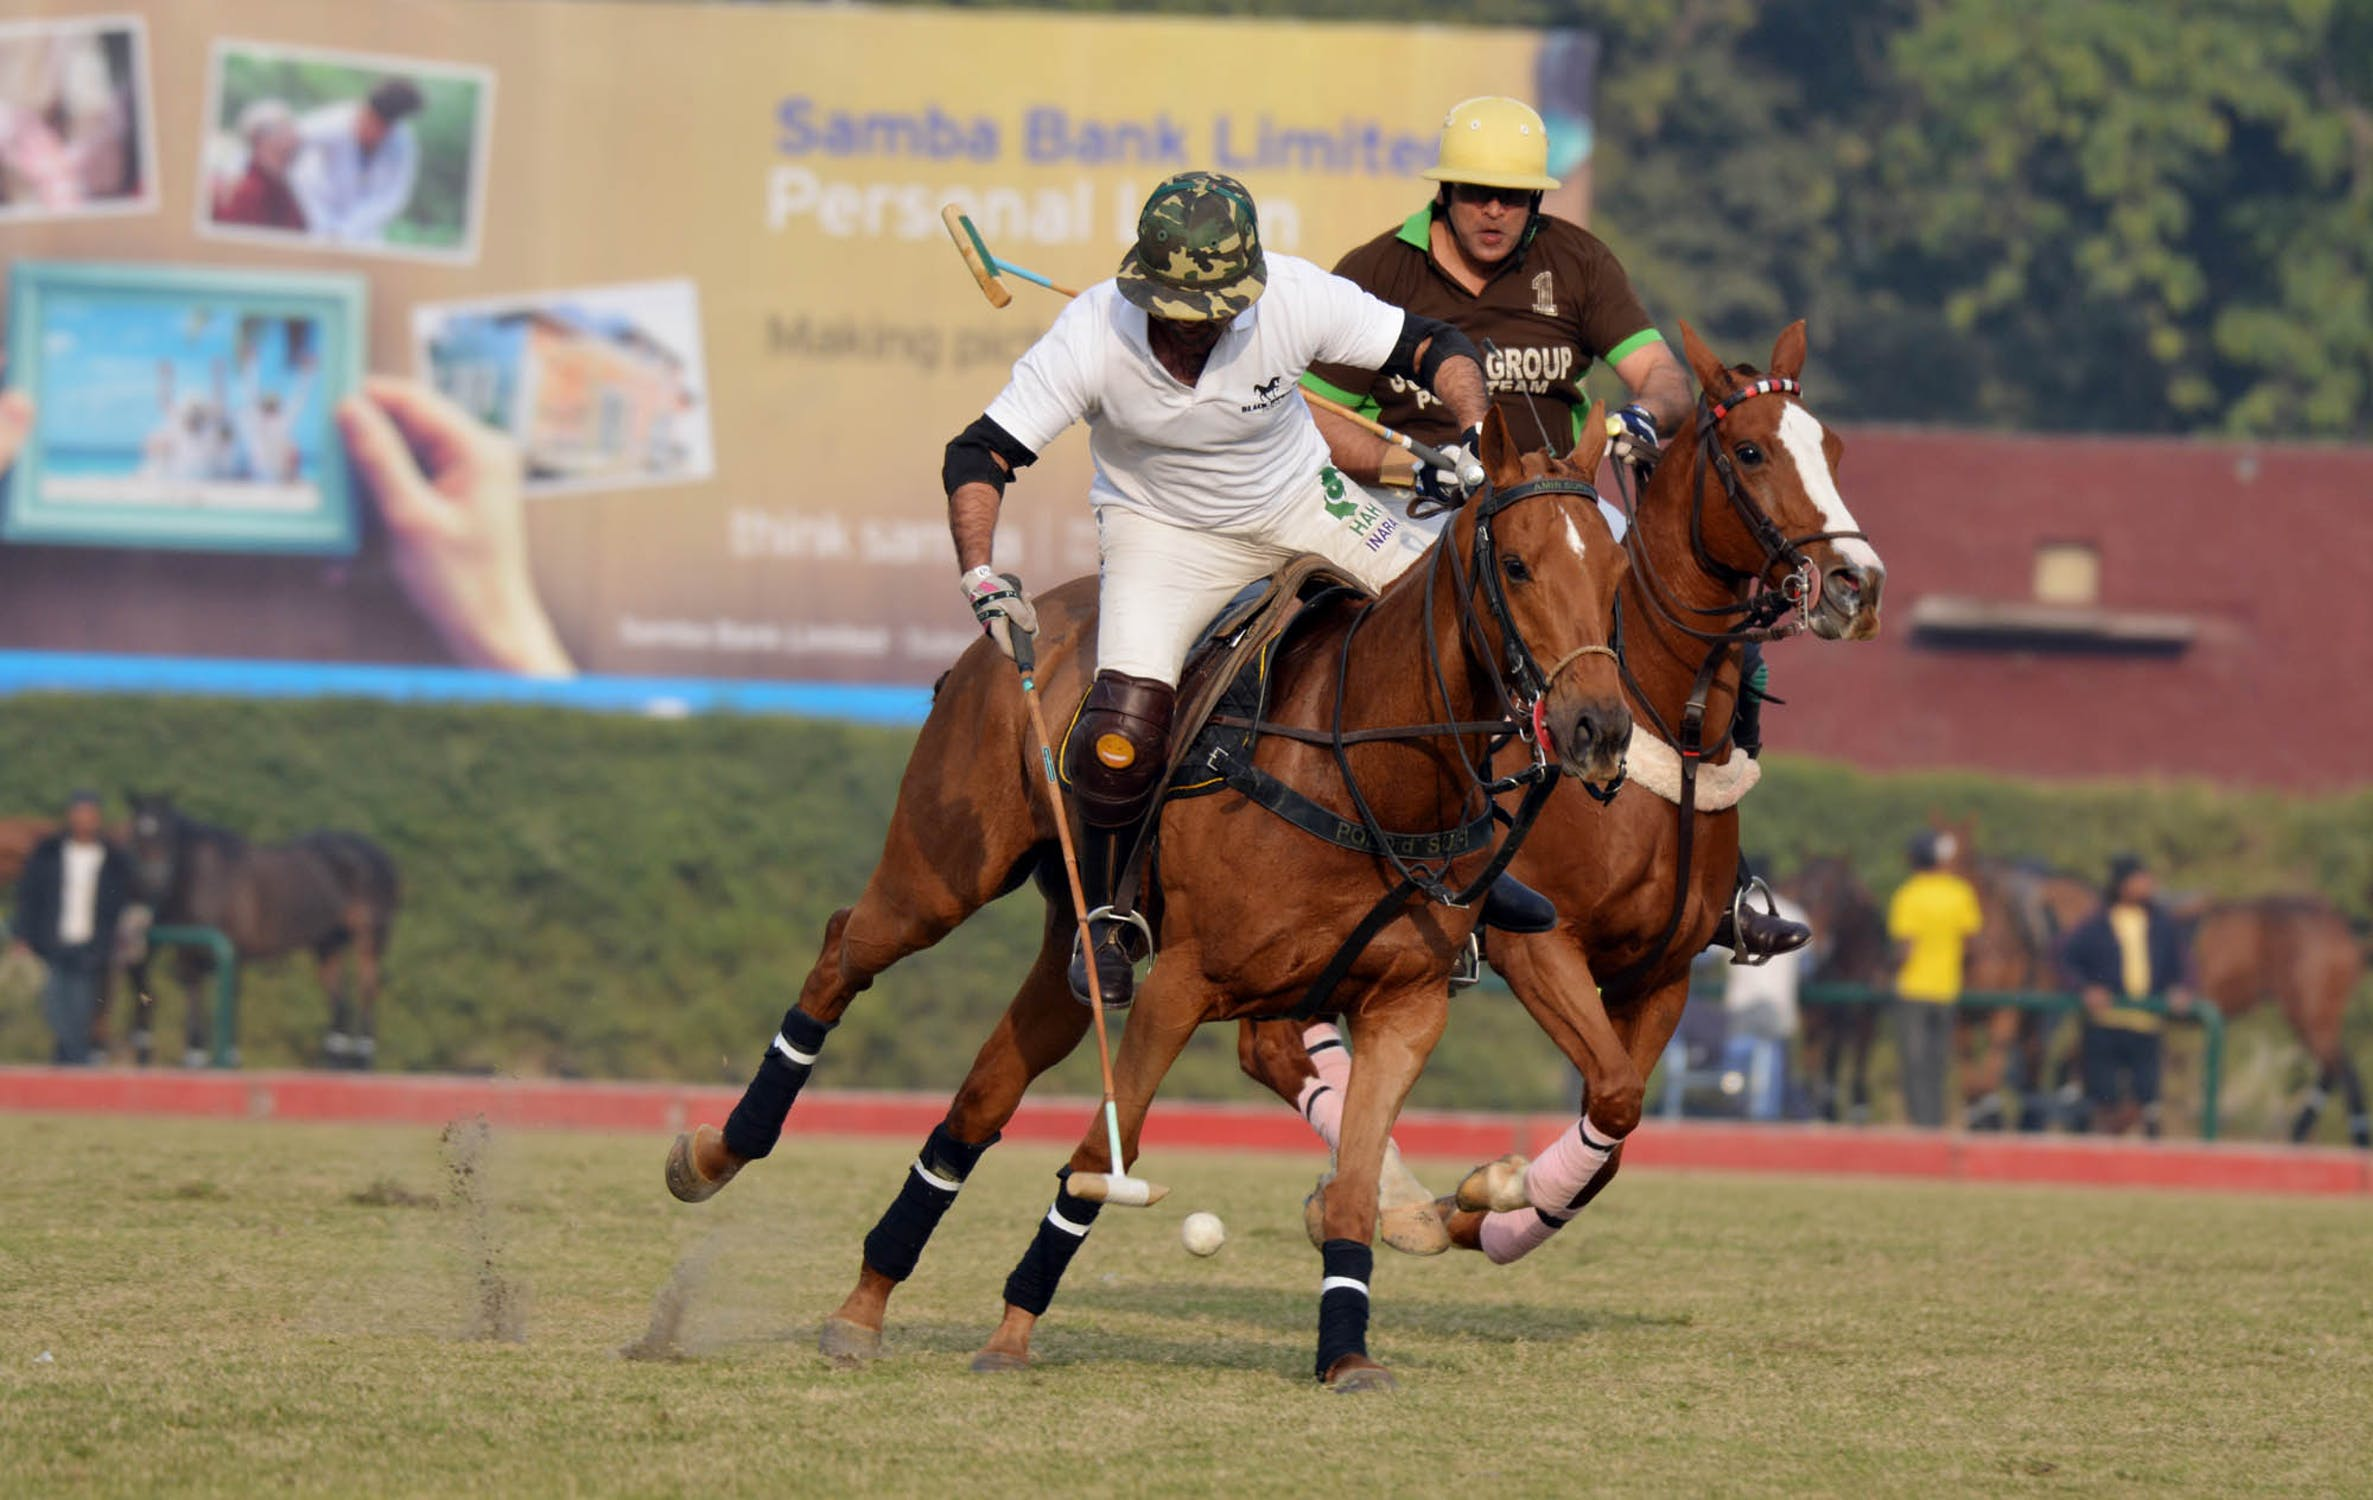 What Are the Best Places to Watch Horse Races and Events in Pakistan?